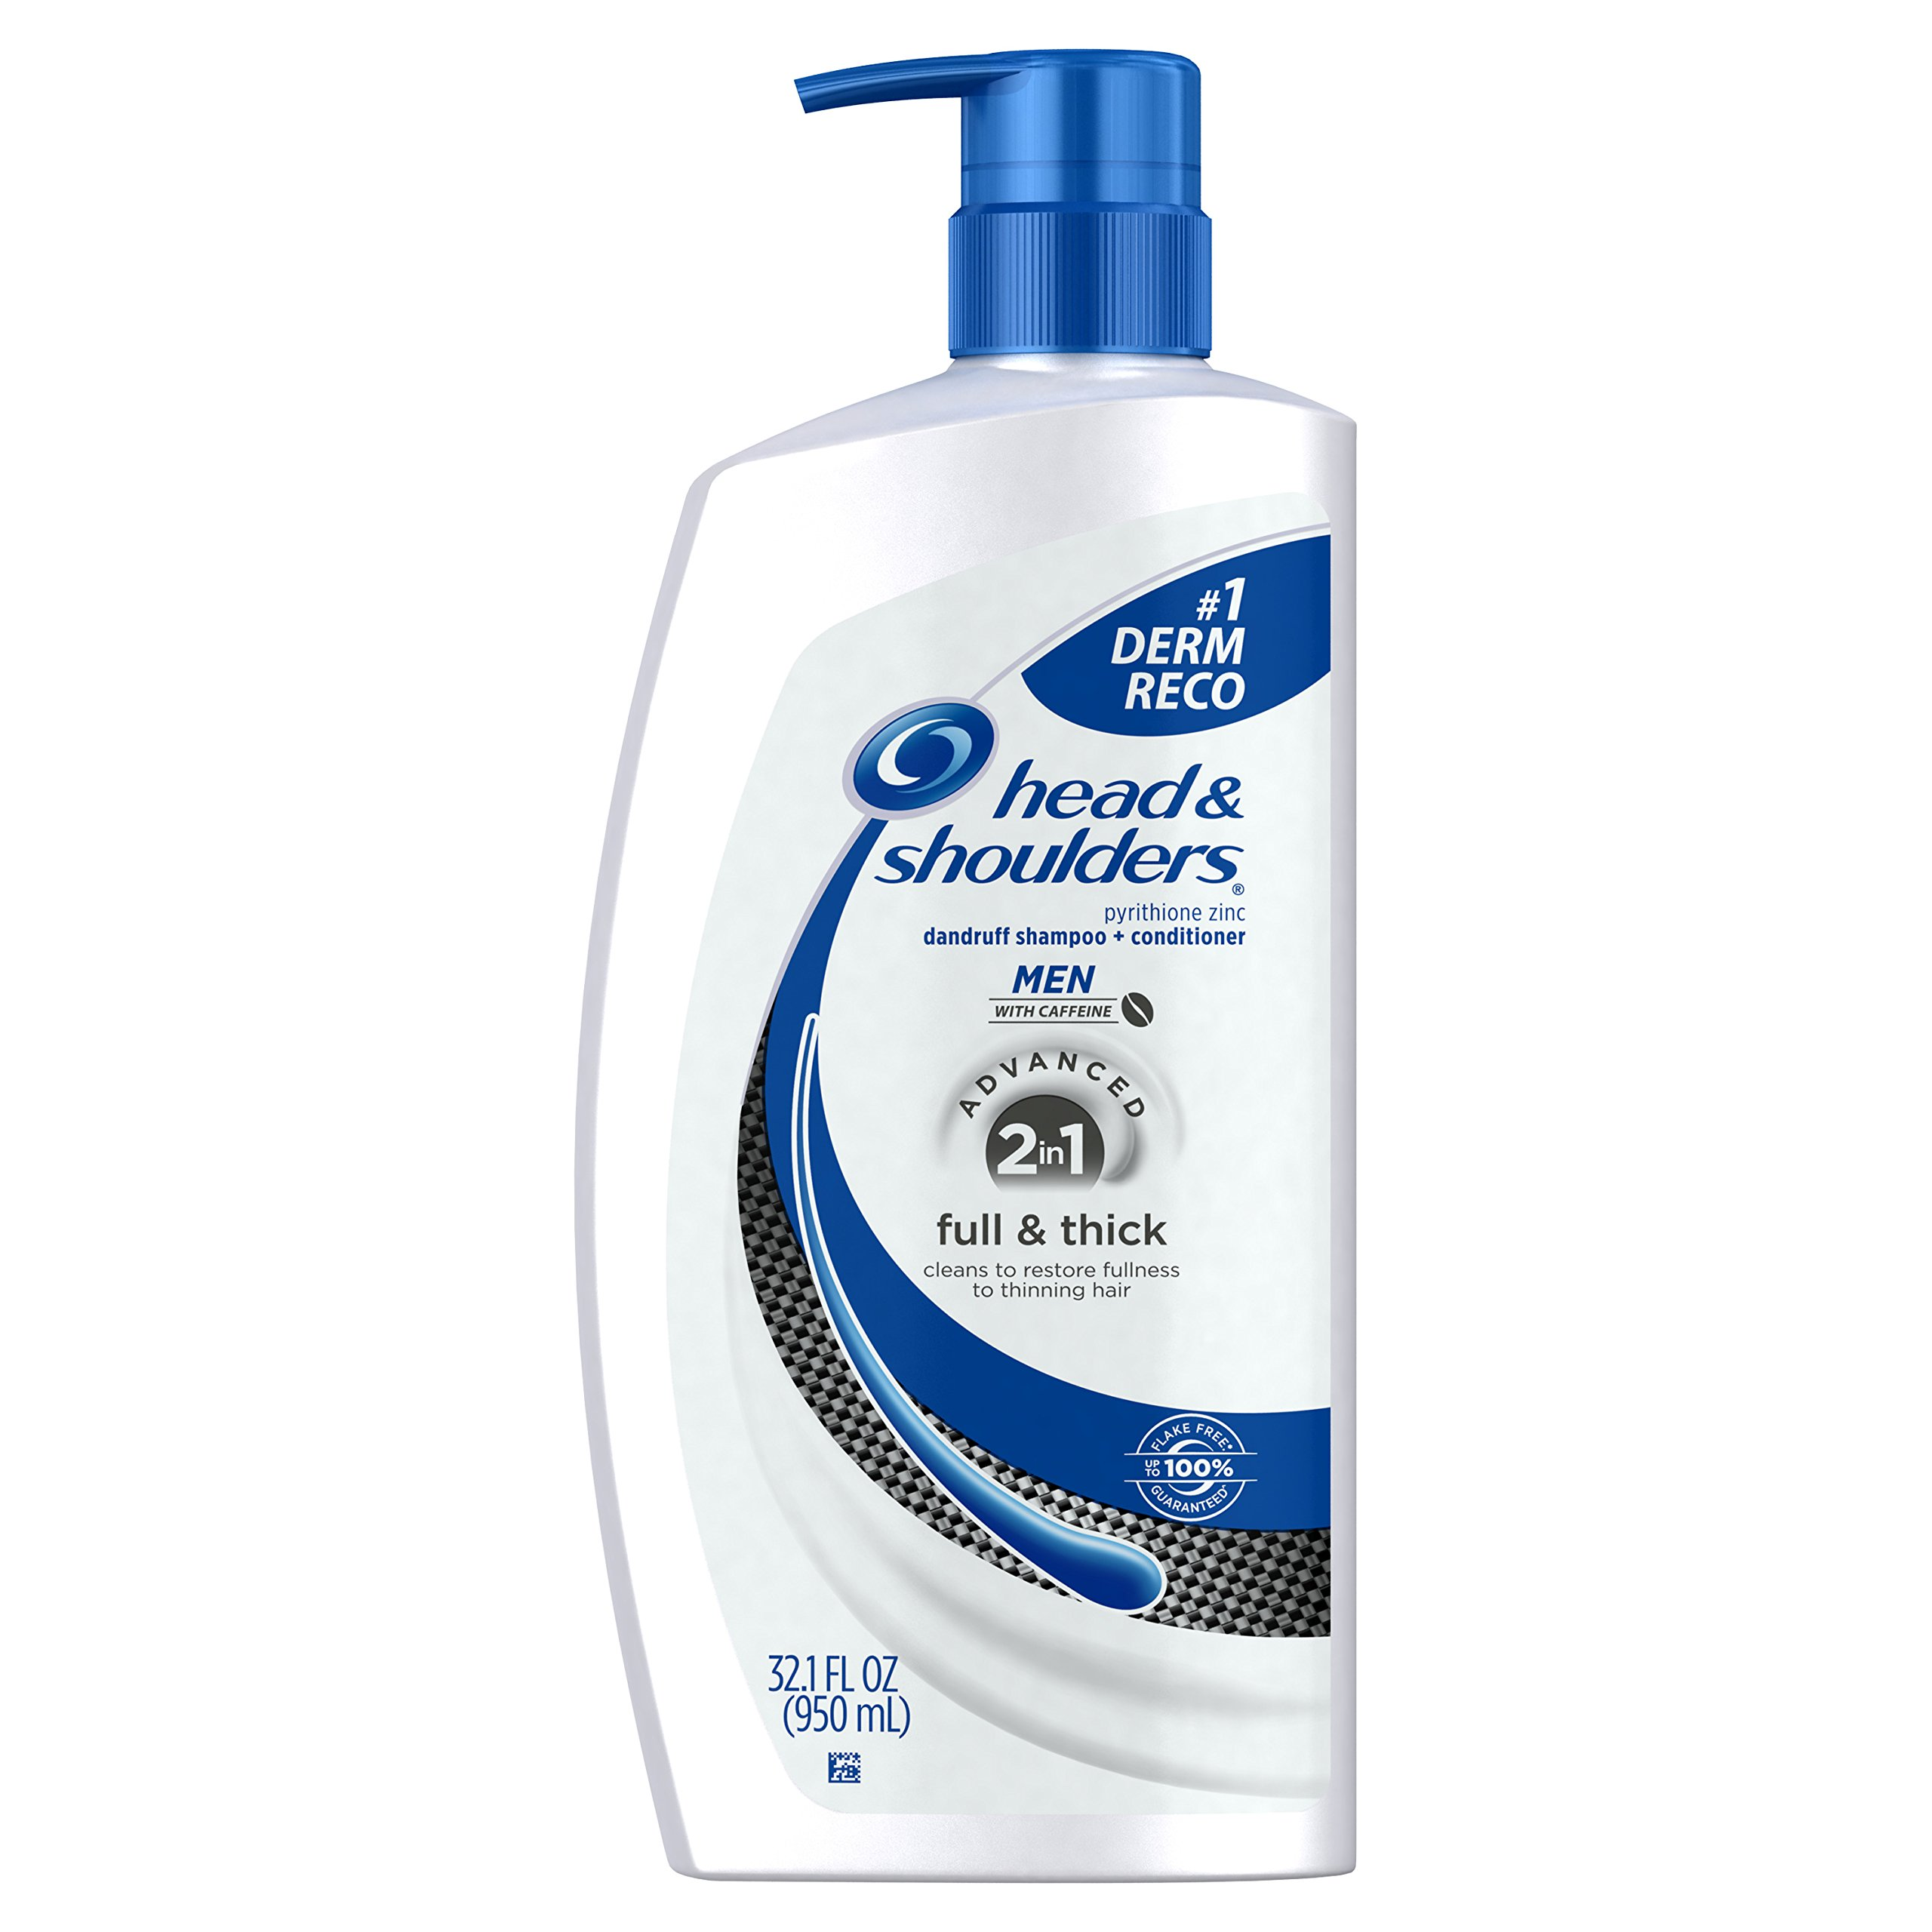 Head and Shoulders Full and Thick 2-in-1 Anti-Dandruff Shampoo + Conditioner 32.1 Fl Oz